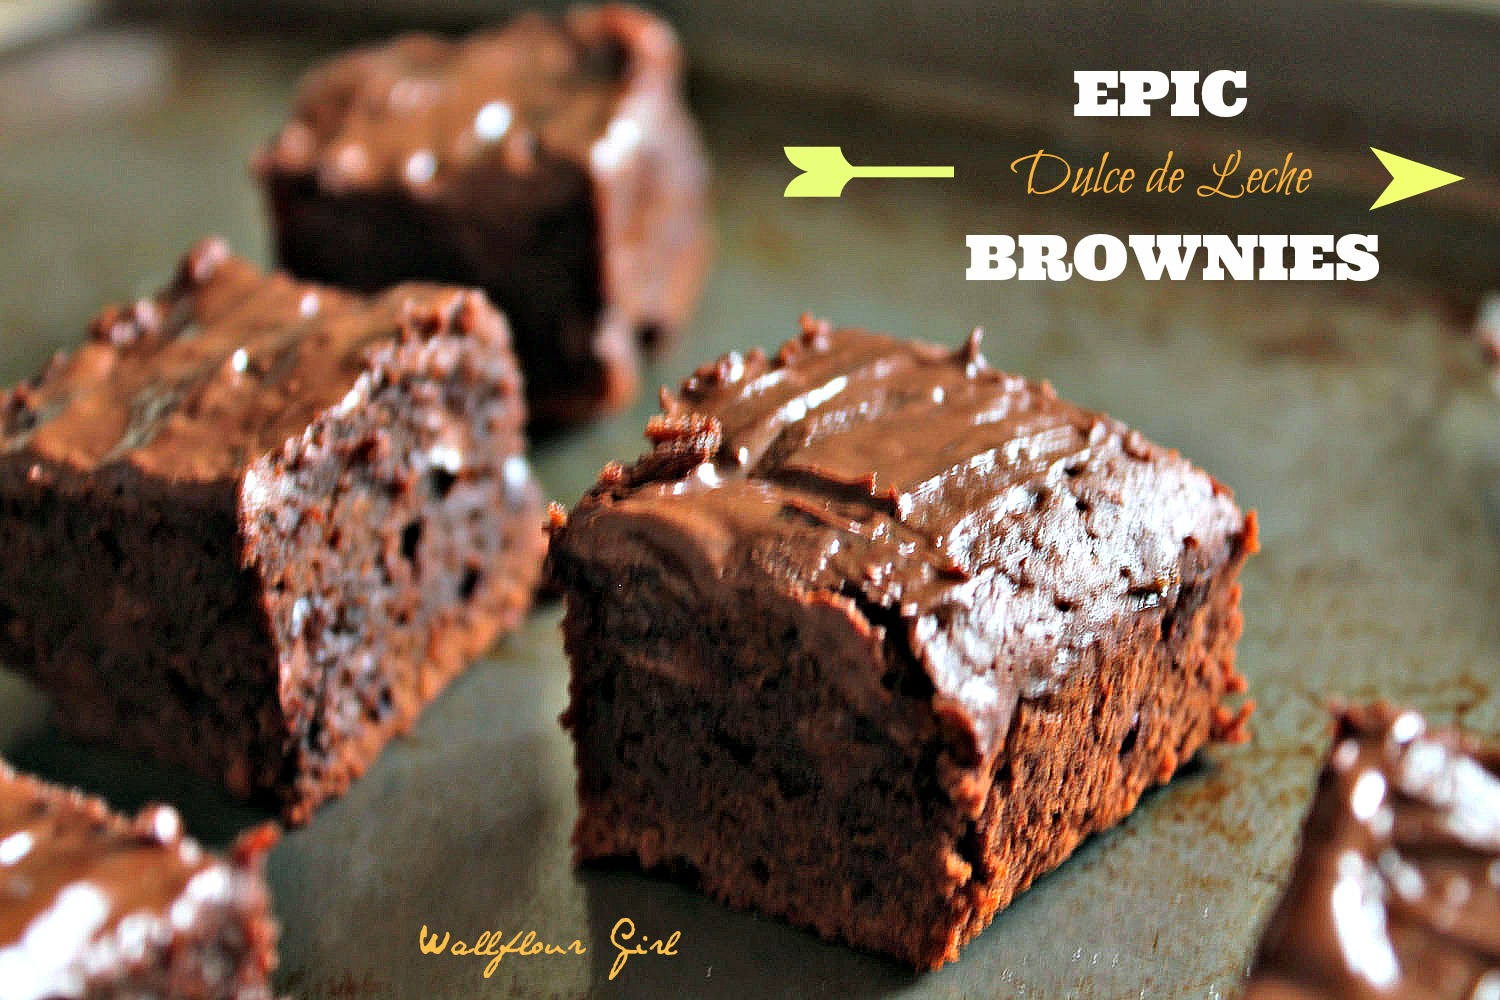 Epic Dulce De Leche Brownies 2--112913